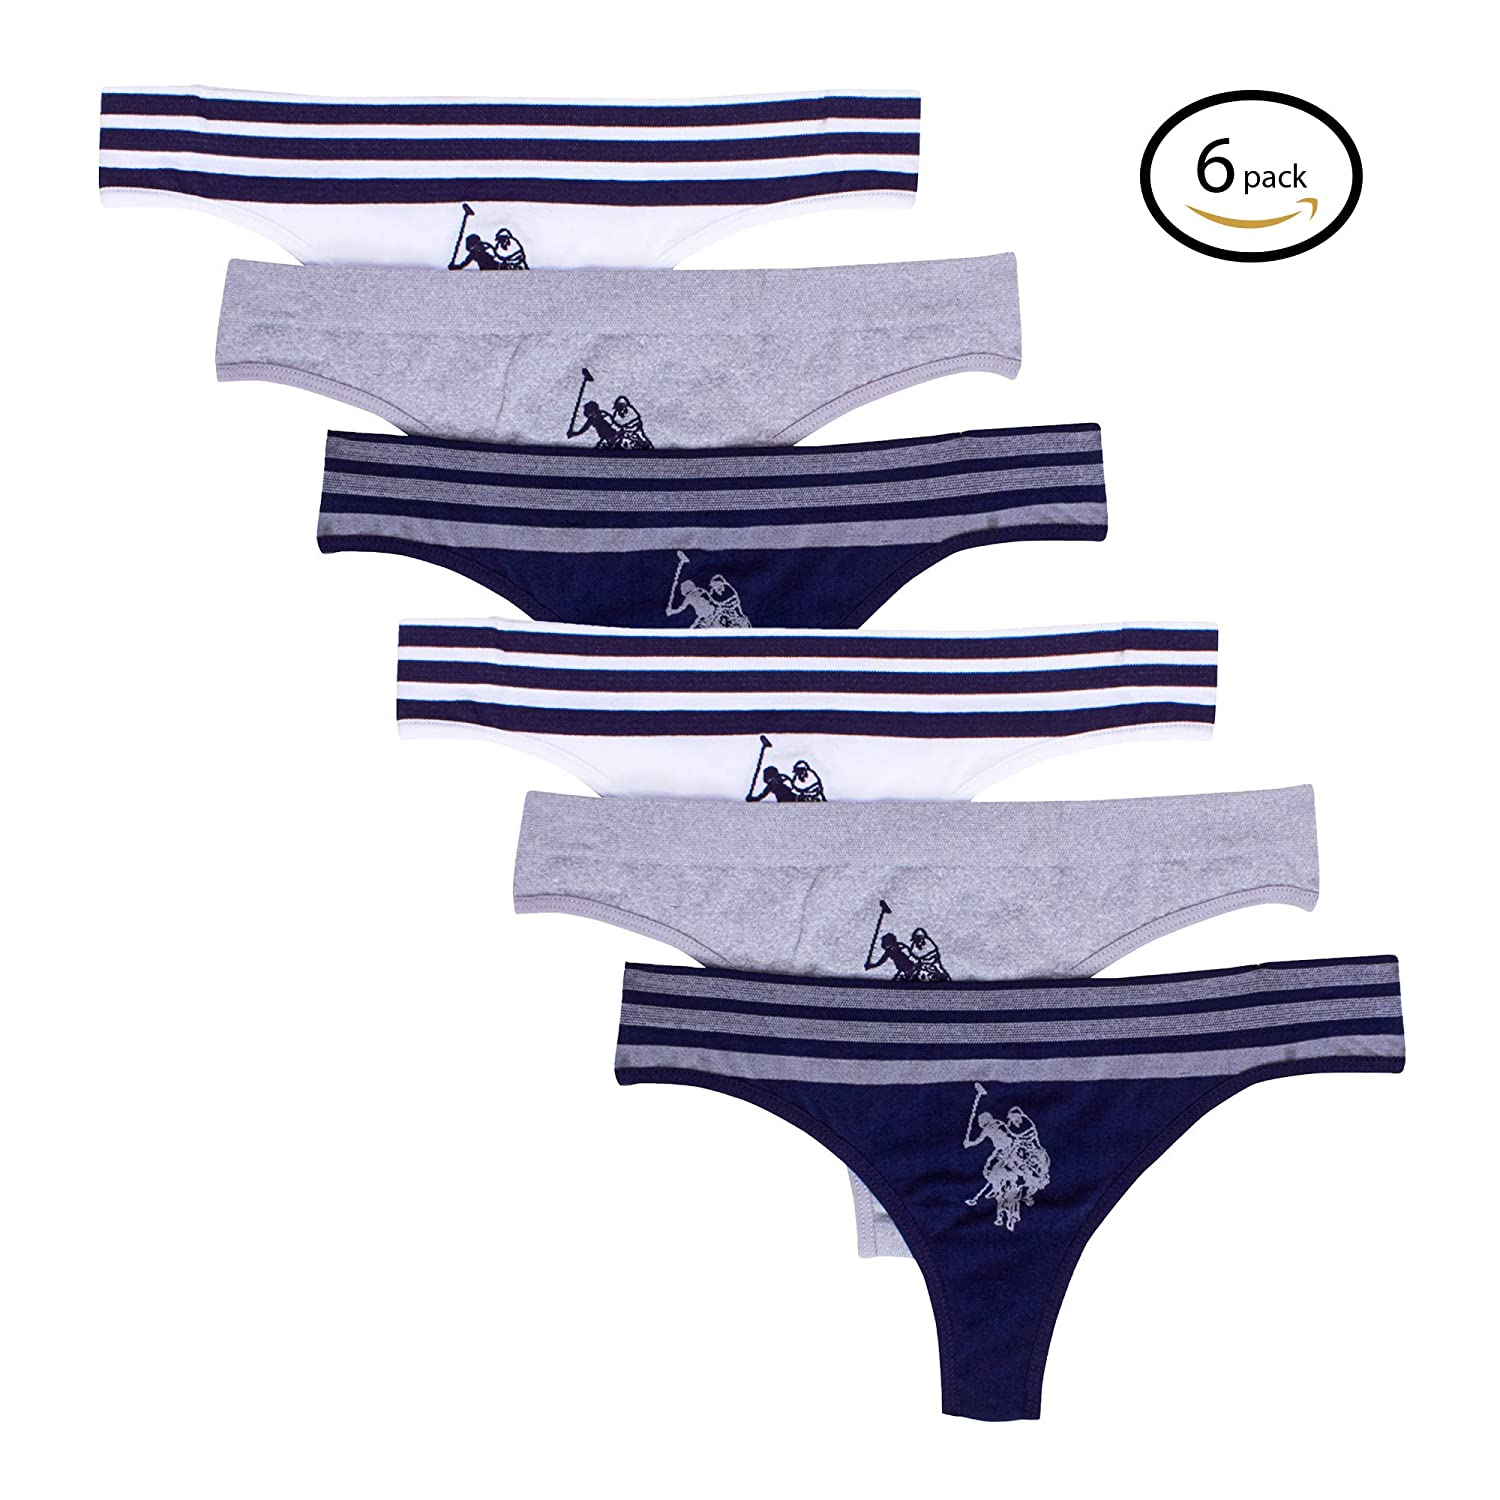 U.S. Polo Assn. Womens Multi Pack Hi Cut Elastic Waist No Panty Lines Thong Panties